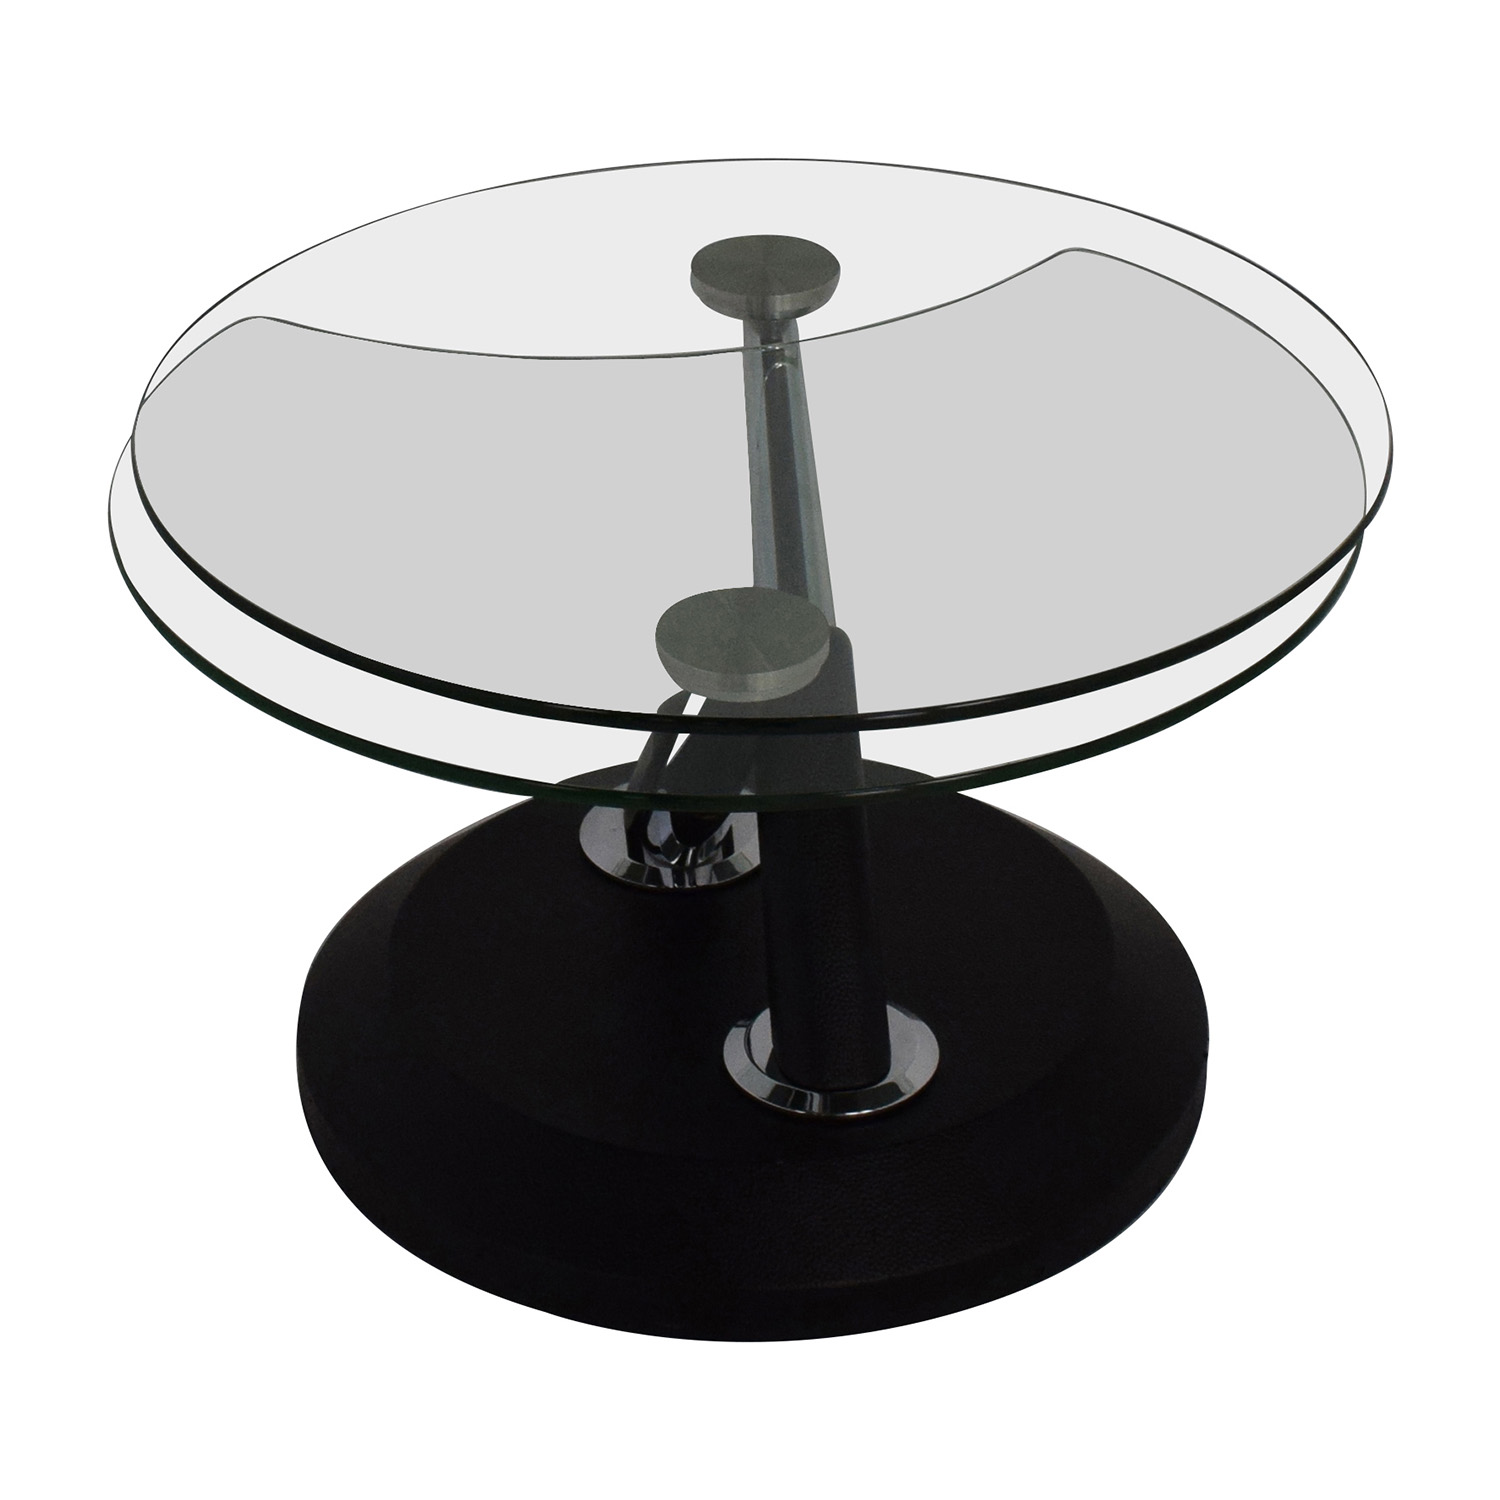 Raymour and Flanigan Raymour & Flanigan Modesto Glass Swivel Coffee Table discount